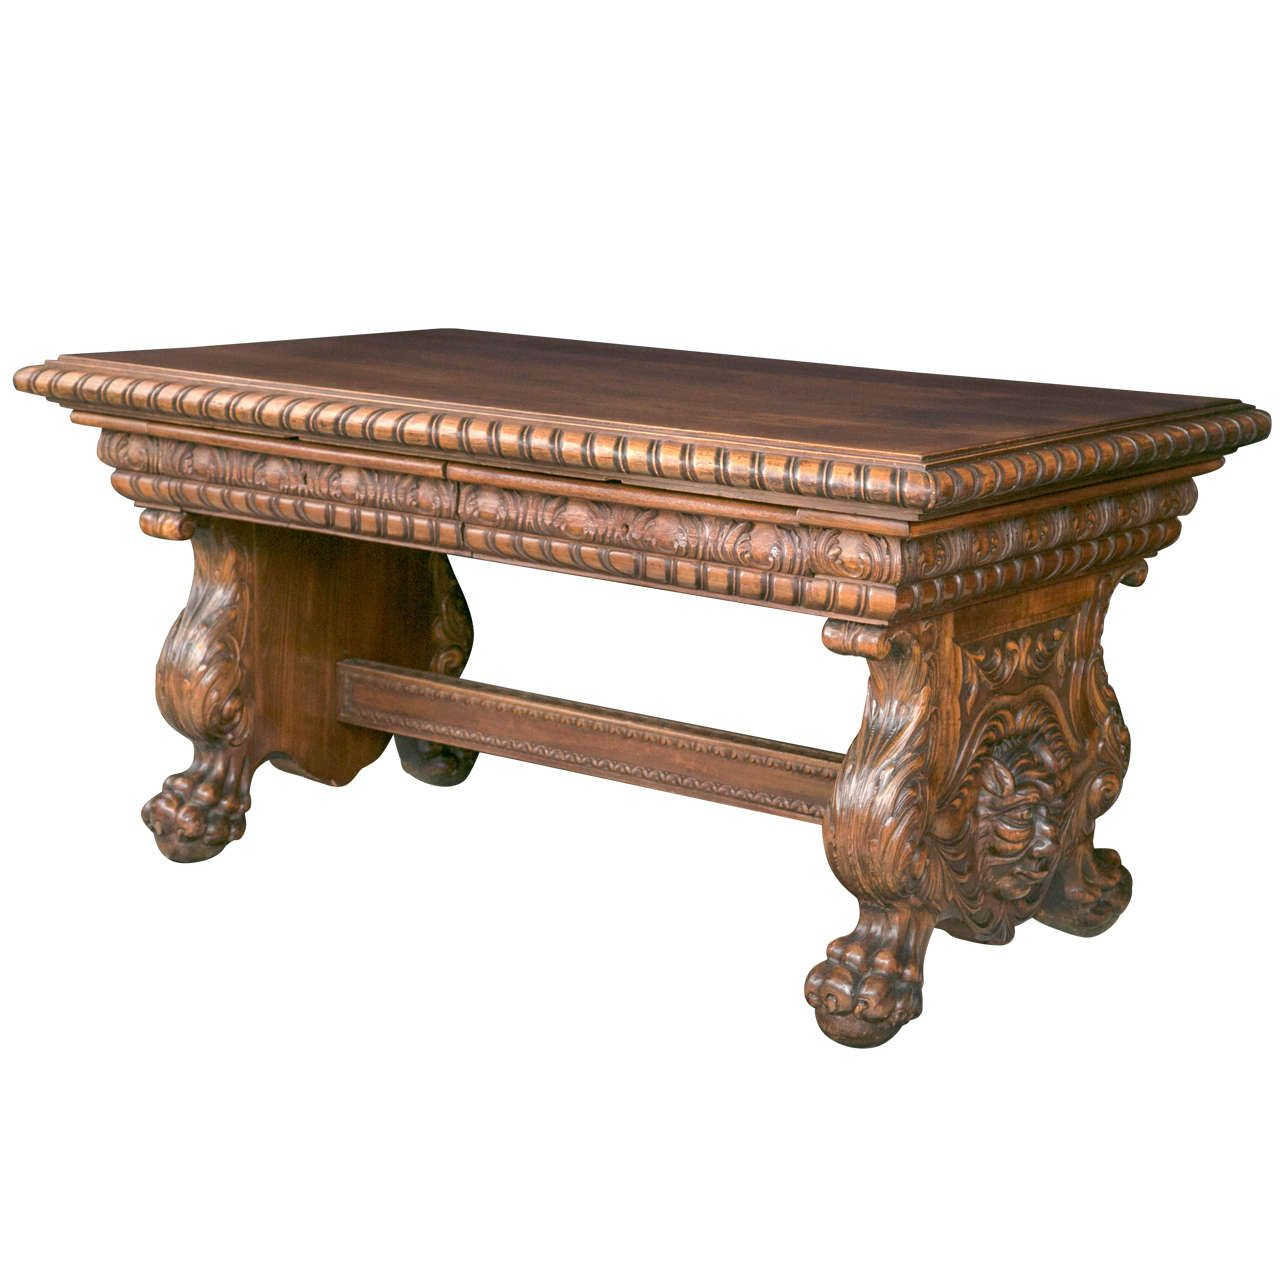 Highly Carved Walnut Library/Writing Table | From a unique collection of antique and modern desks and writing tables at https://www.1stdibs.com/furniture/tables/desks-writing-tables/